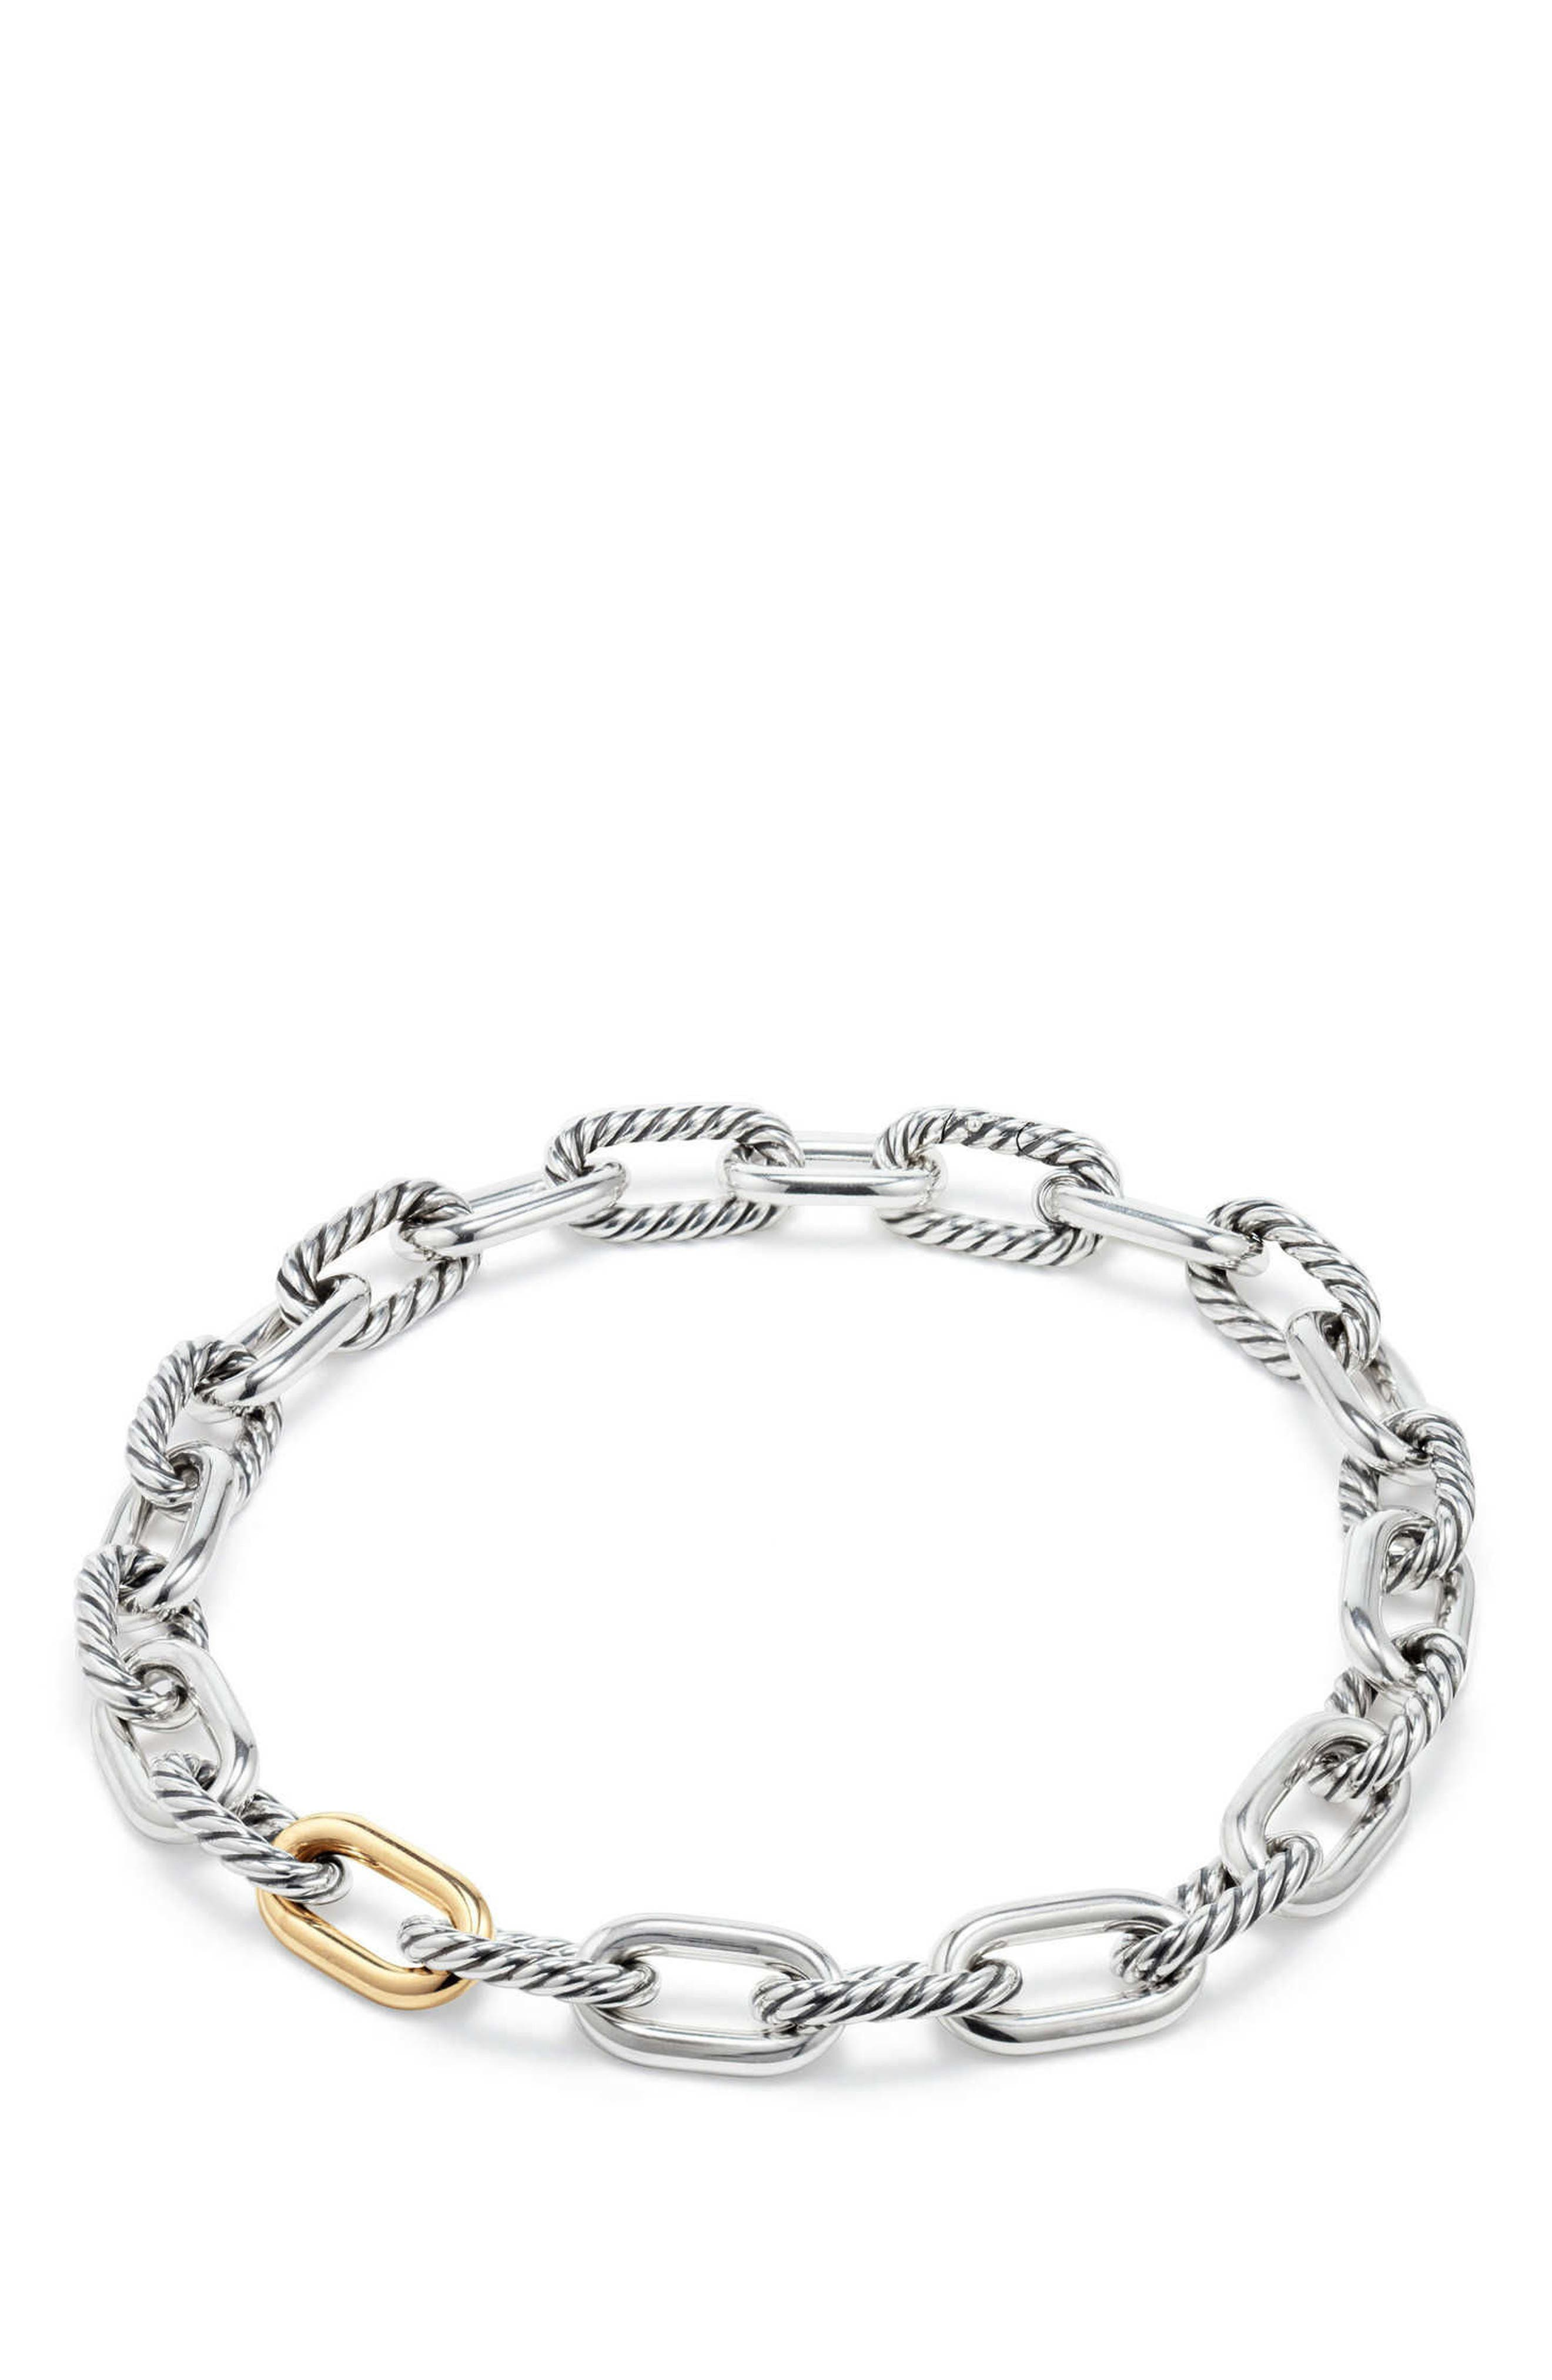 DY Madison Chain Large Necklace with 18K Gold,                             Alternate thumbnail 2, color,                             SILVER/ GOLD